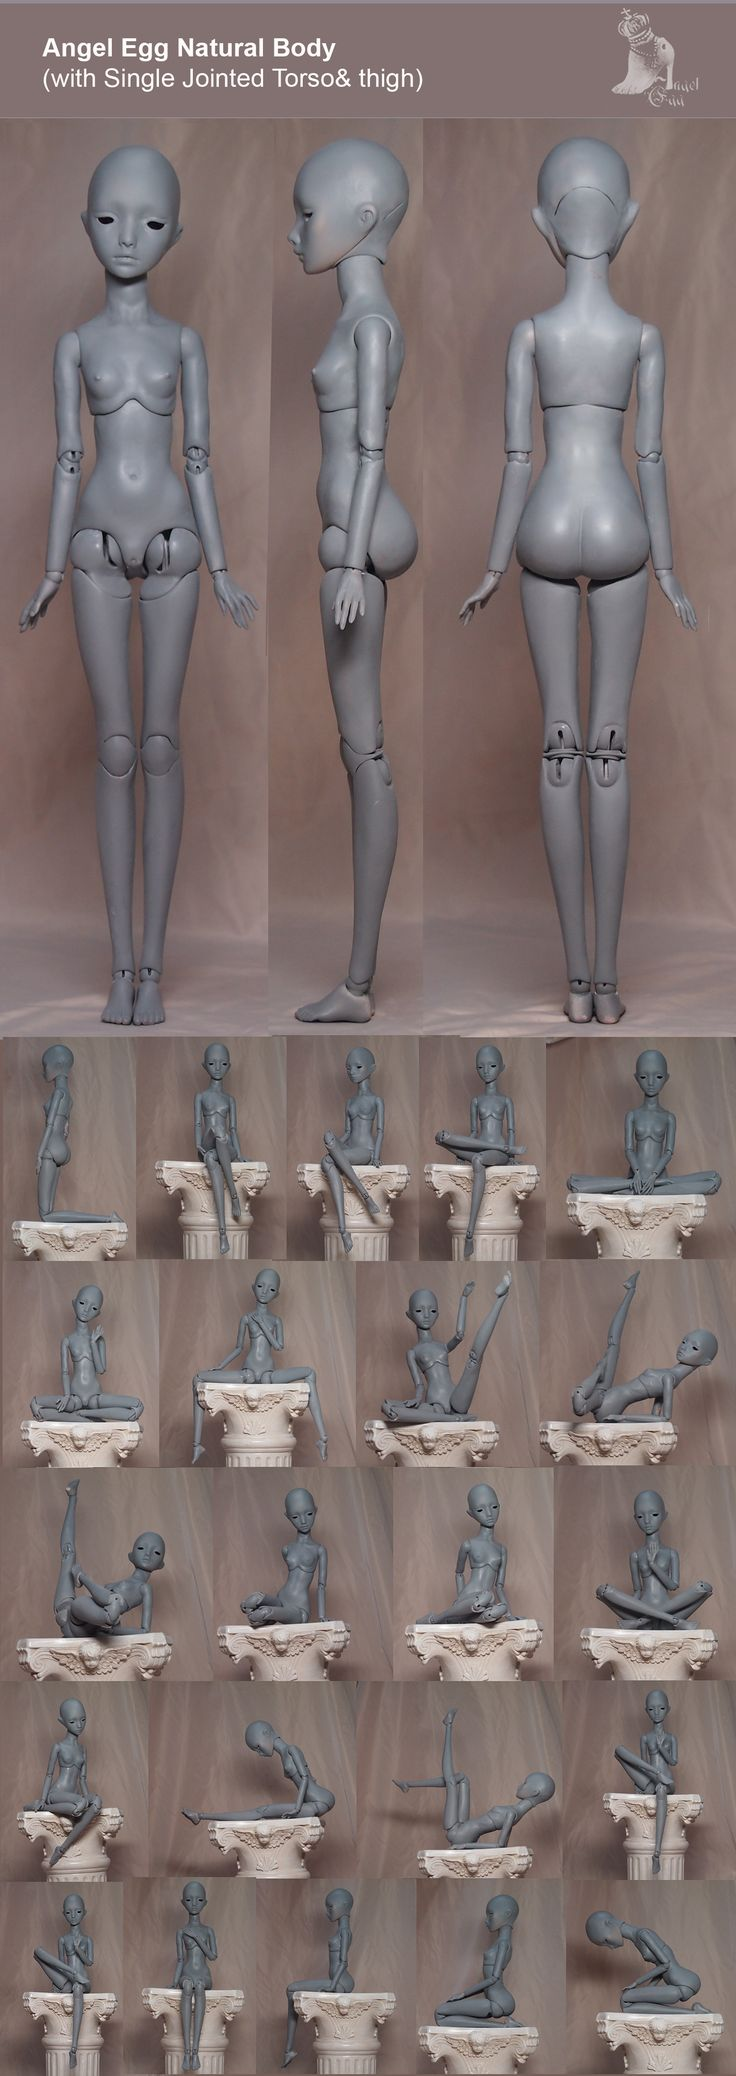 single-joint-Natural-Body.jpg (1500×4232)